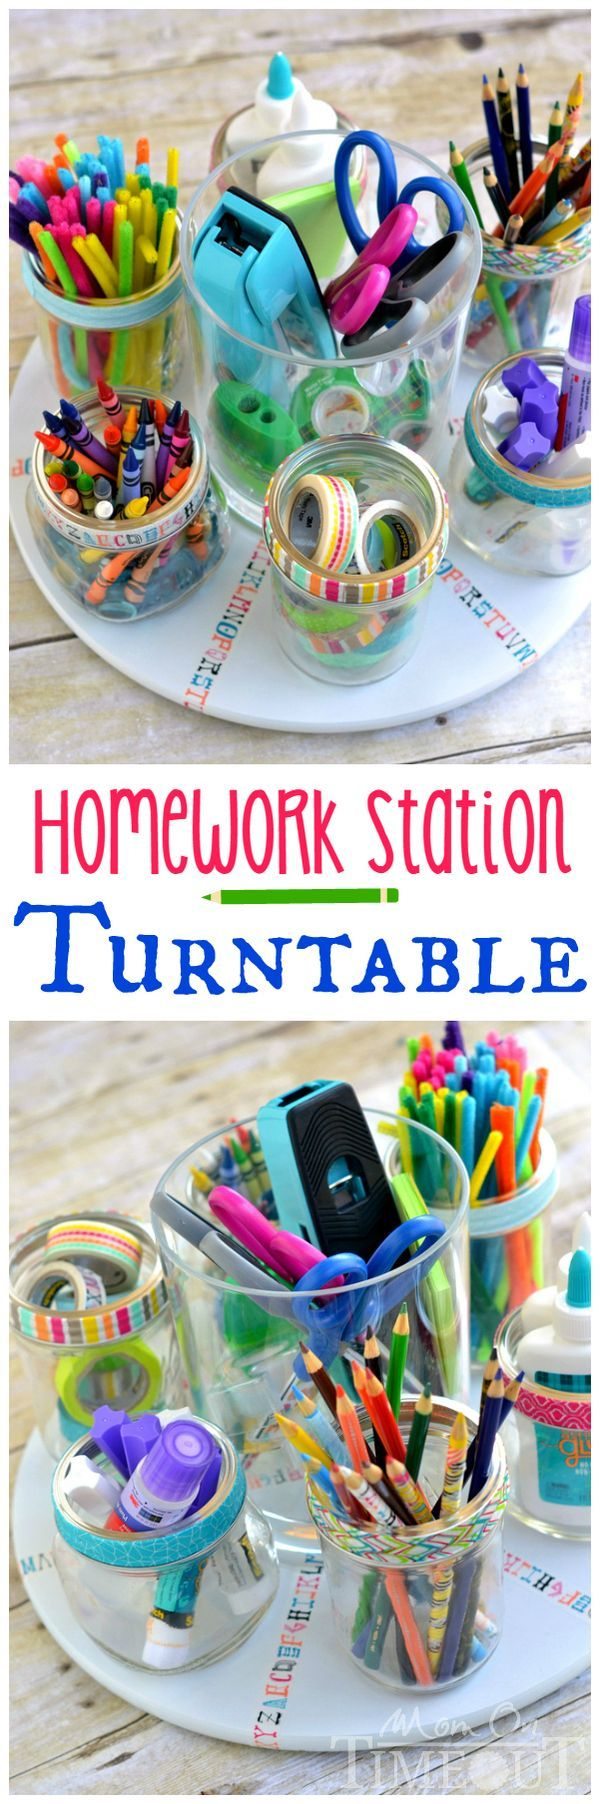 Homework time doesn't have to be a pain! This Homework Station Turntable keeps…